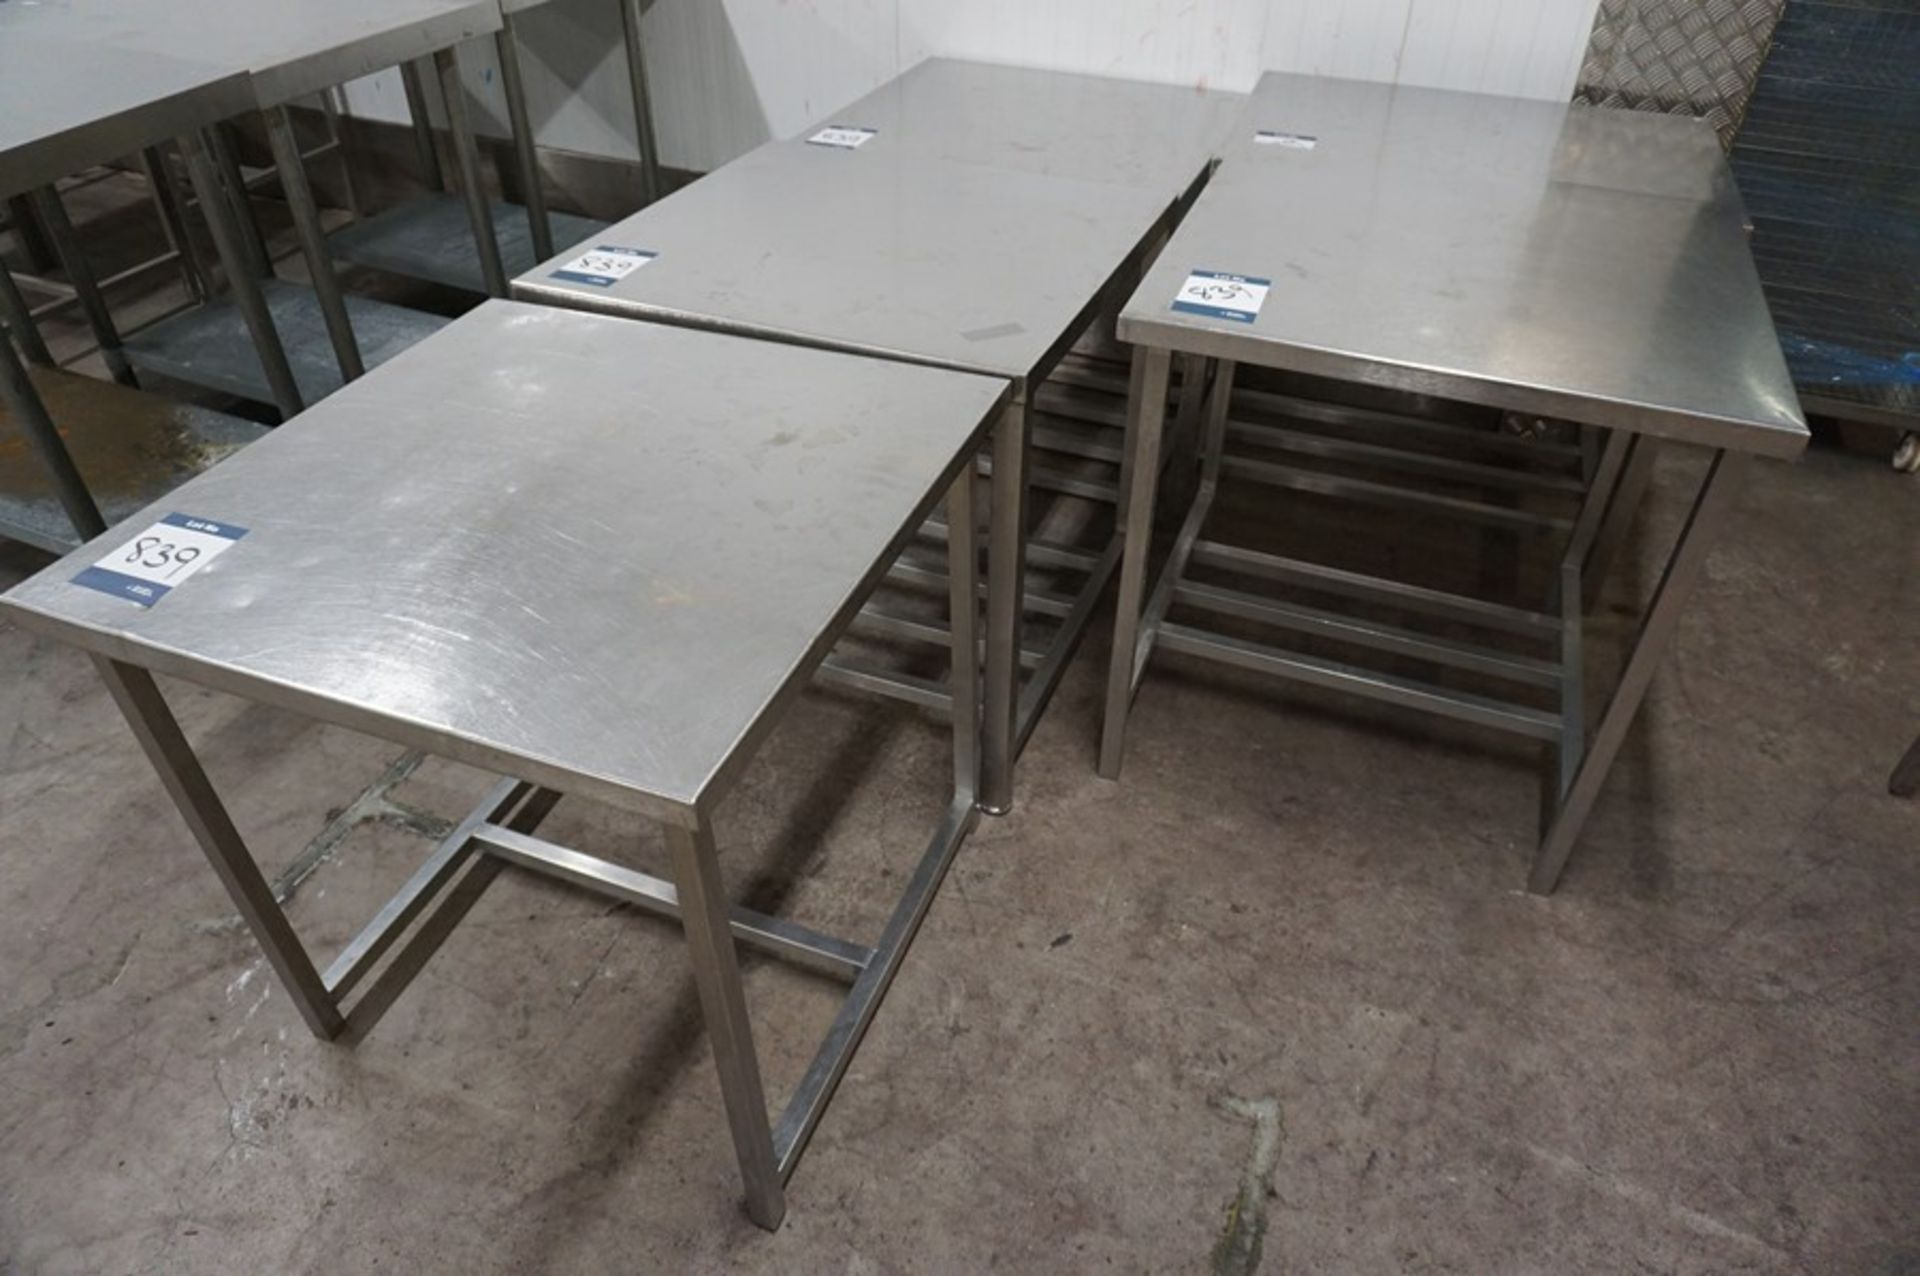 Lot 839 - 5 x Various stainless steel prep tables, as lotted